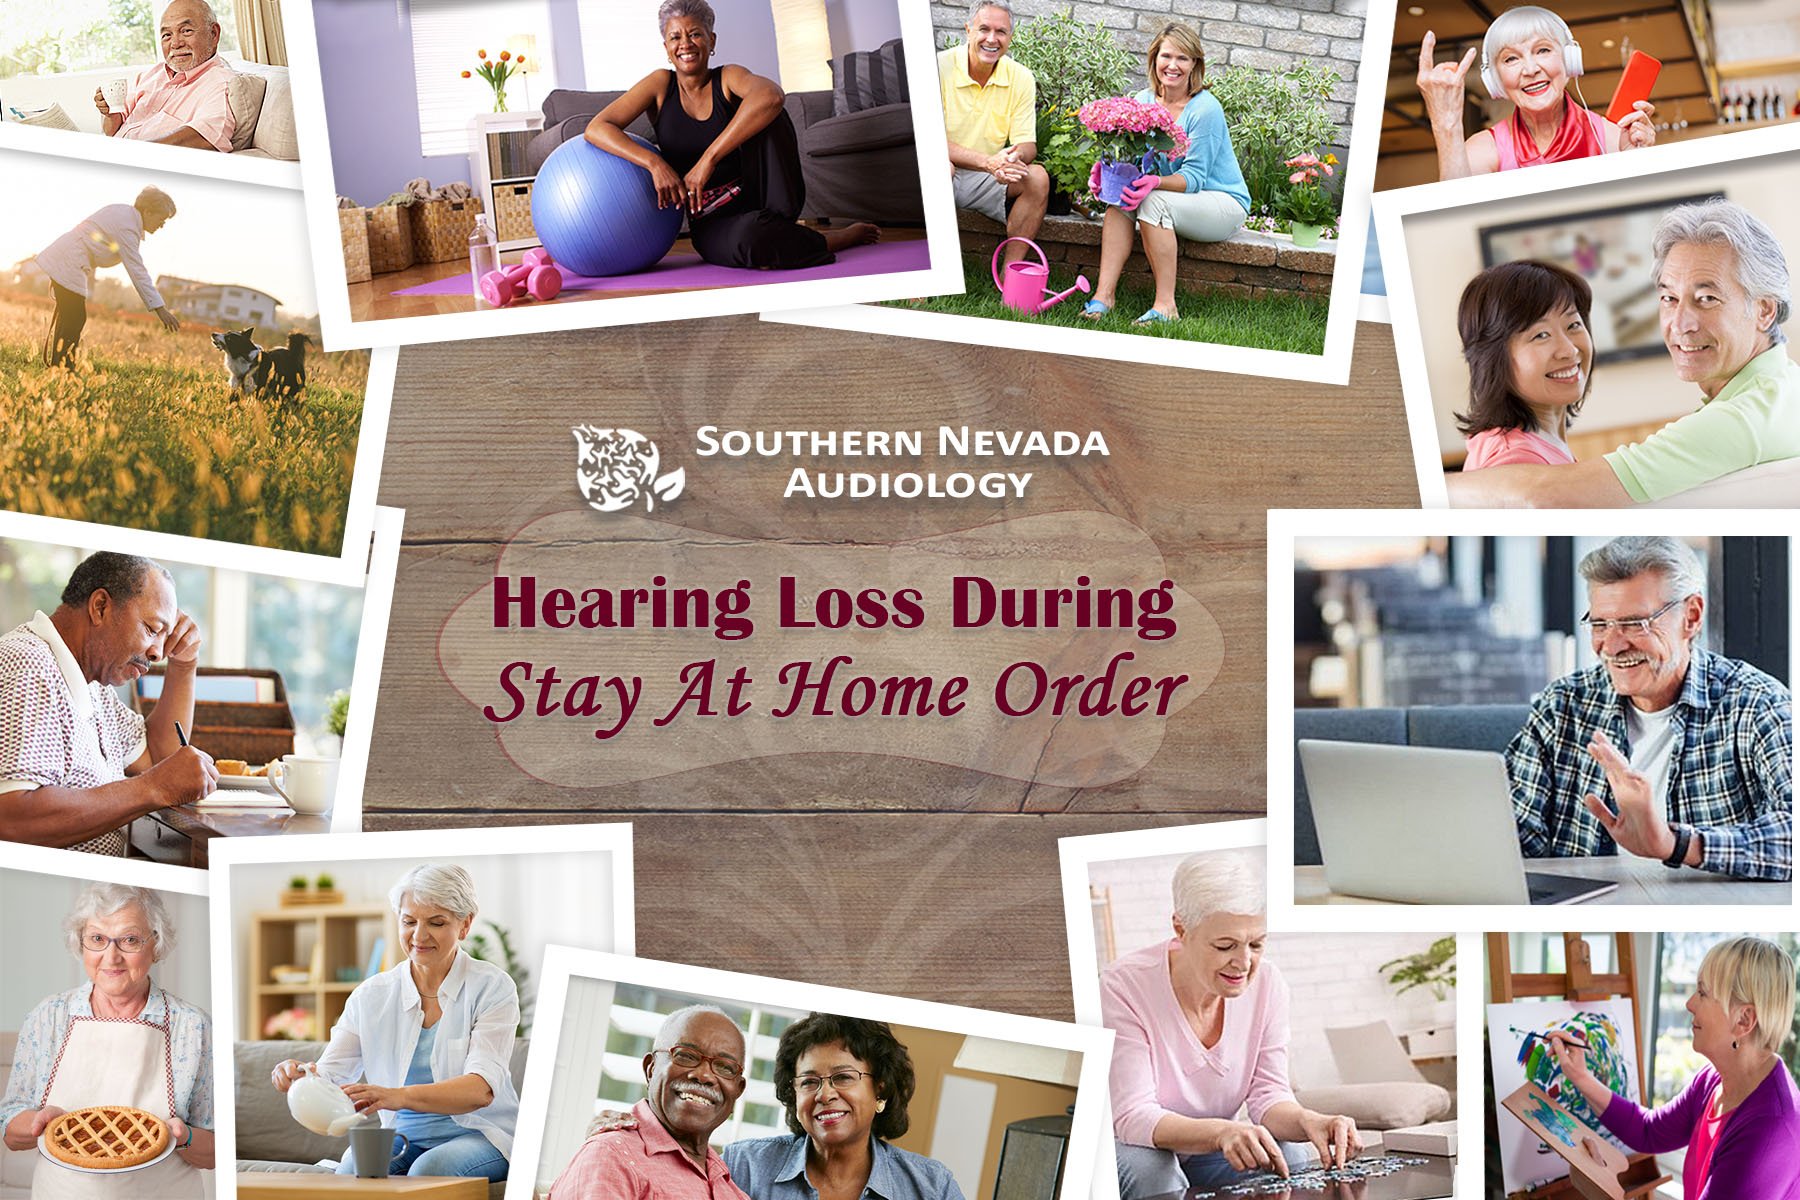 Hearing Loss During Stay At Home Order